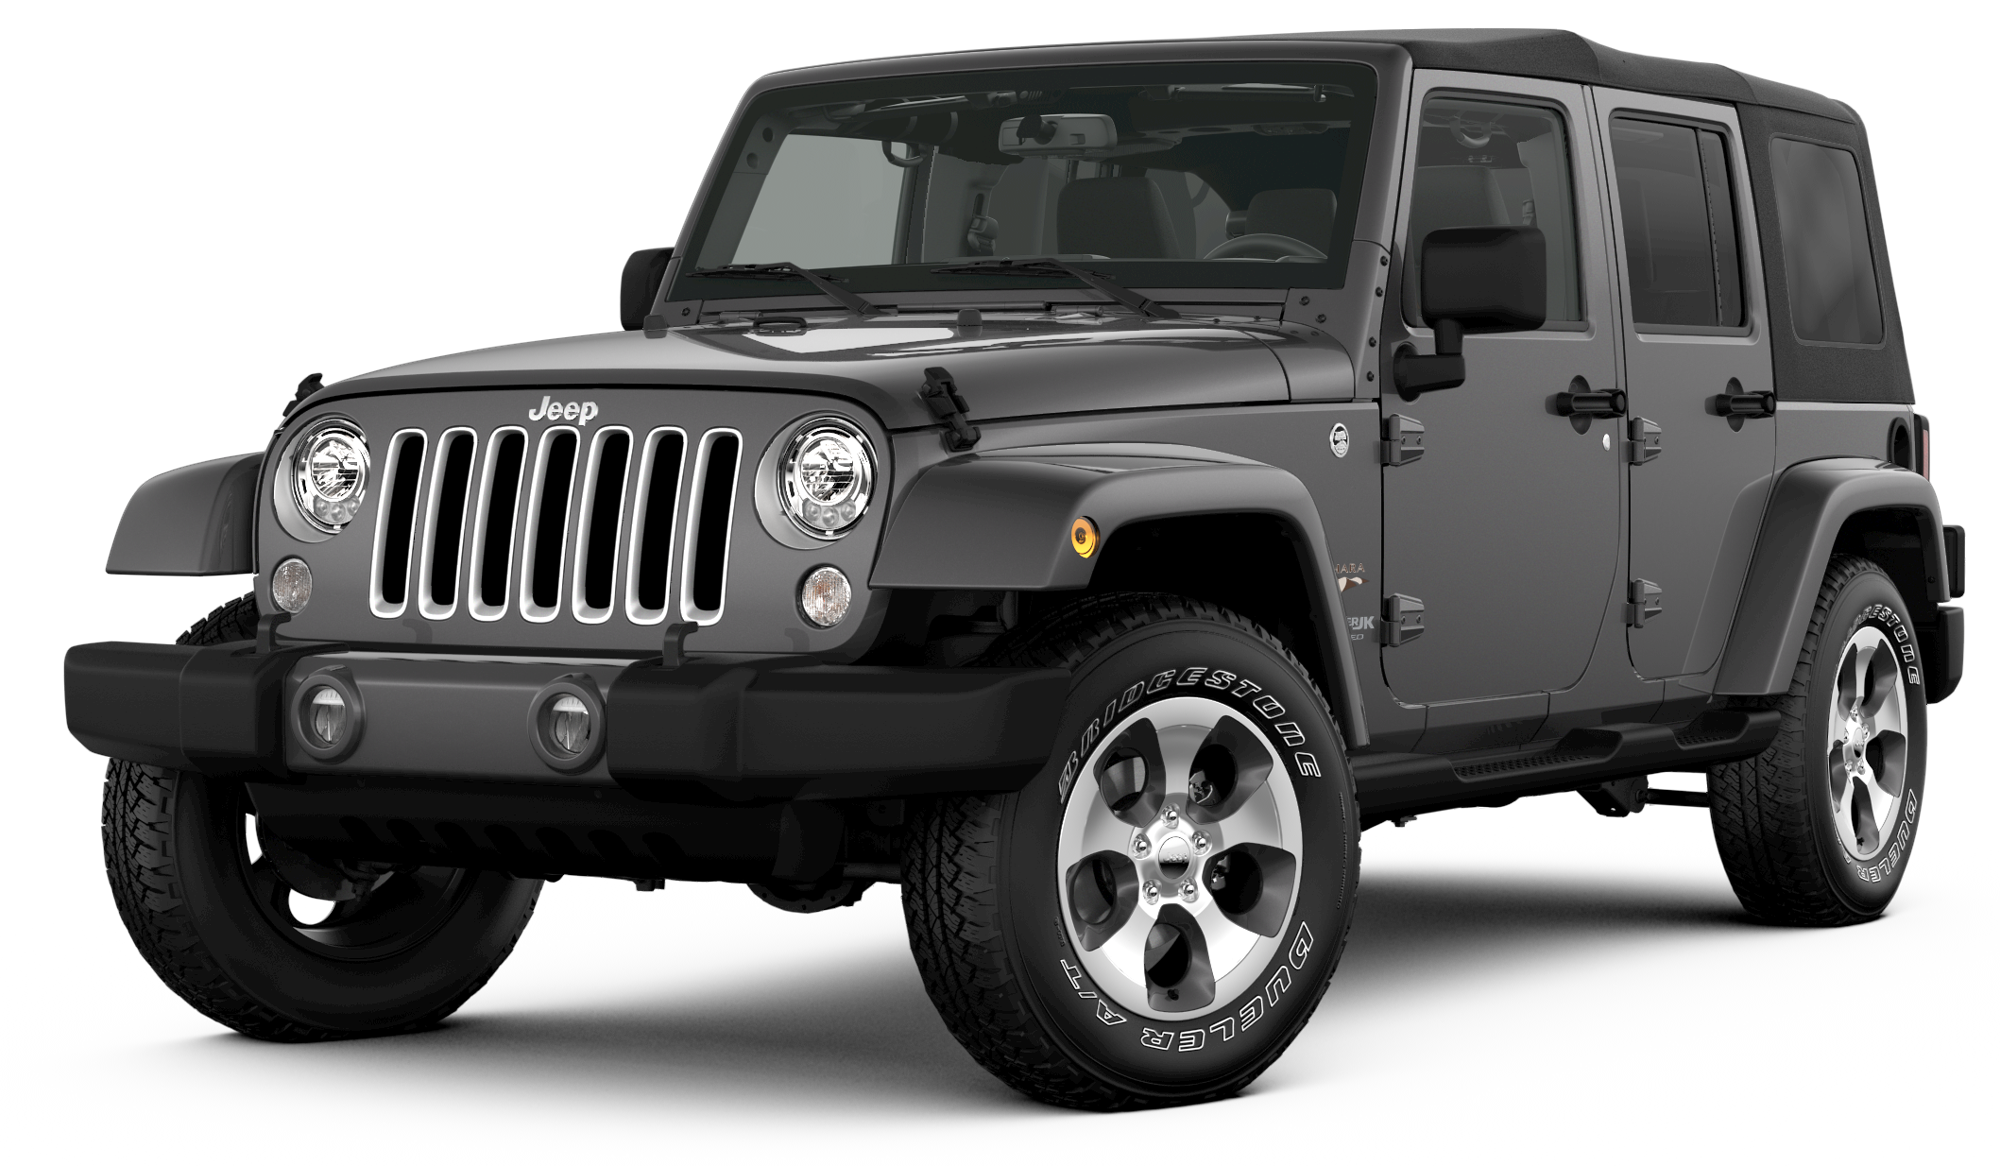 2018 jeep wrangler jk incentives specials offers in downers grove il. Black Bedroom Furniture Sets. Home Design Ideas